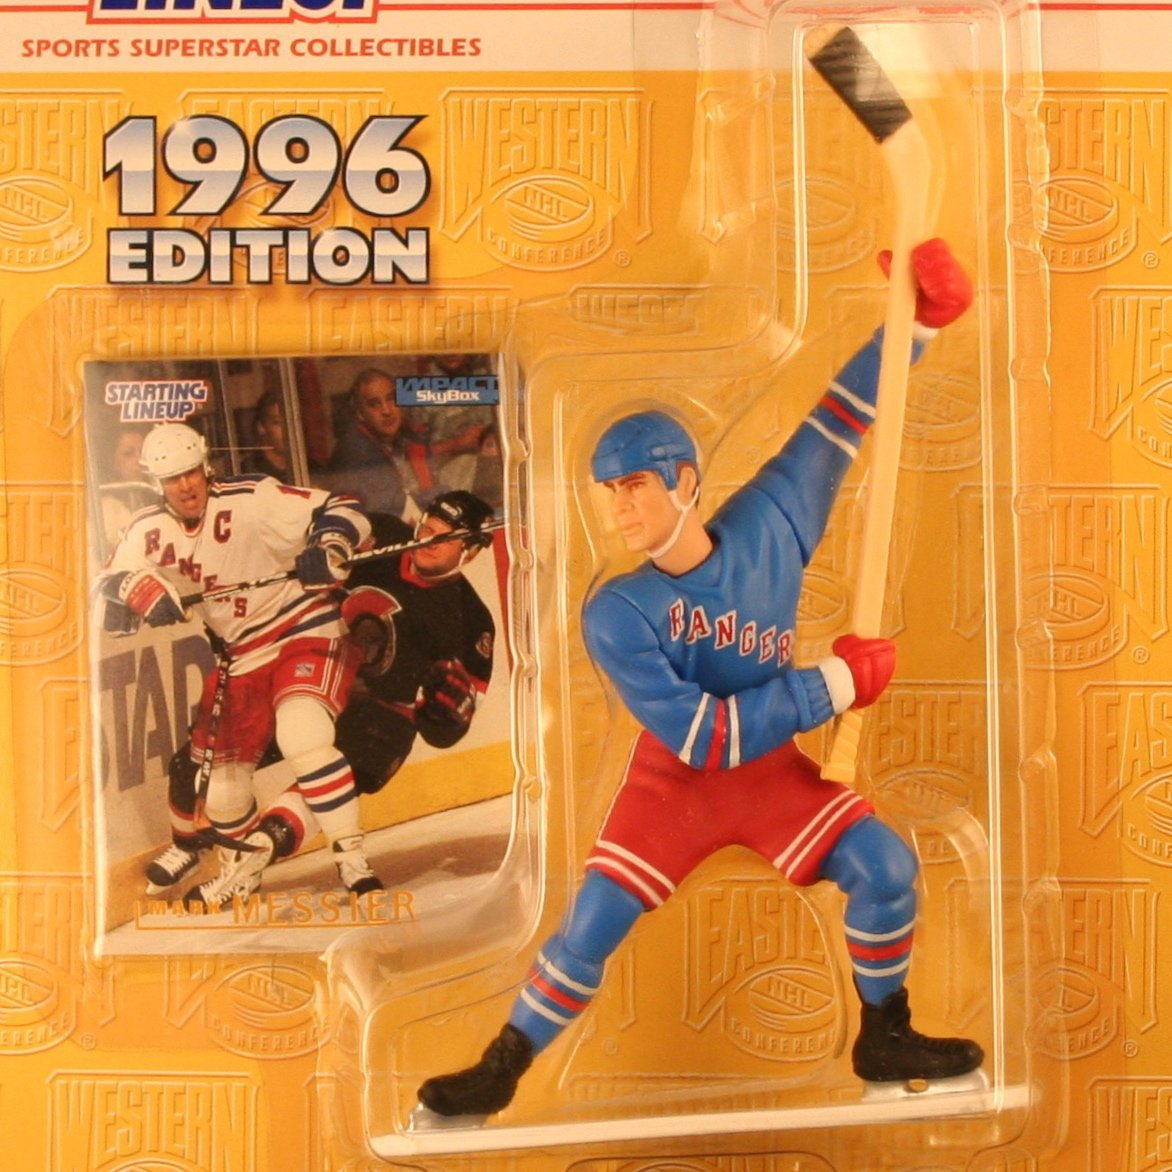 1996 NHL Starting Lineup - Mark Messier